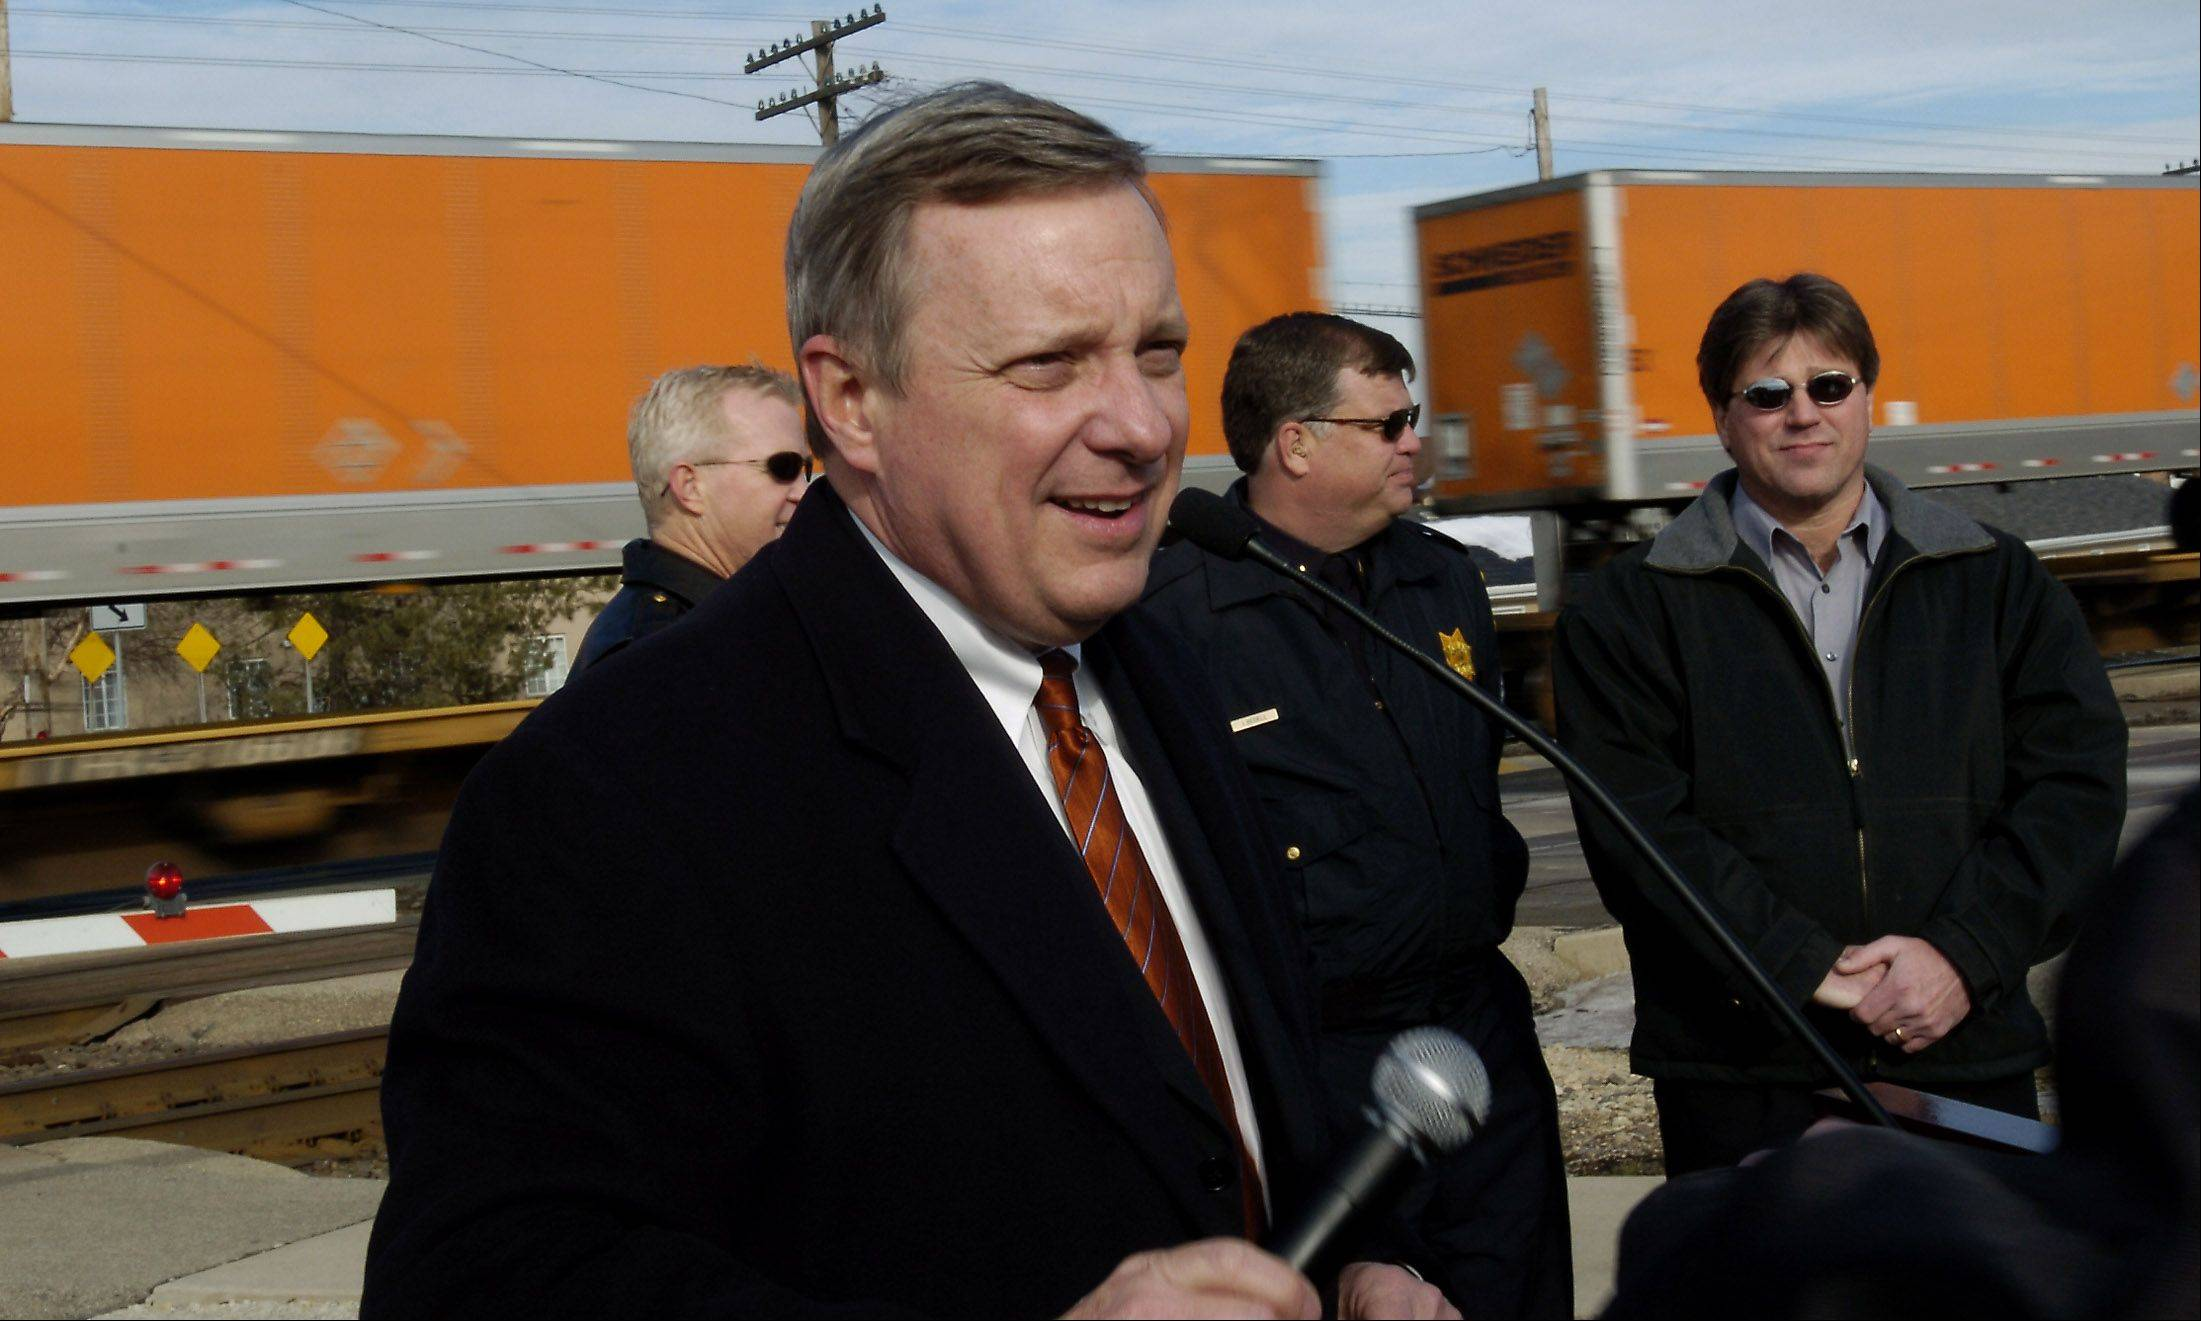 U.S. Sen. Dick Durbin was named to a committee tasked with settling differences between Senate and House bills on transportation funding.